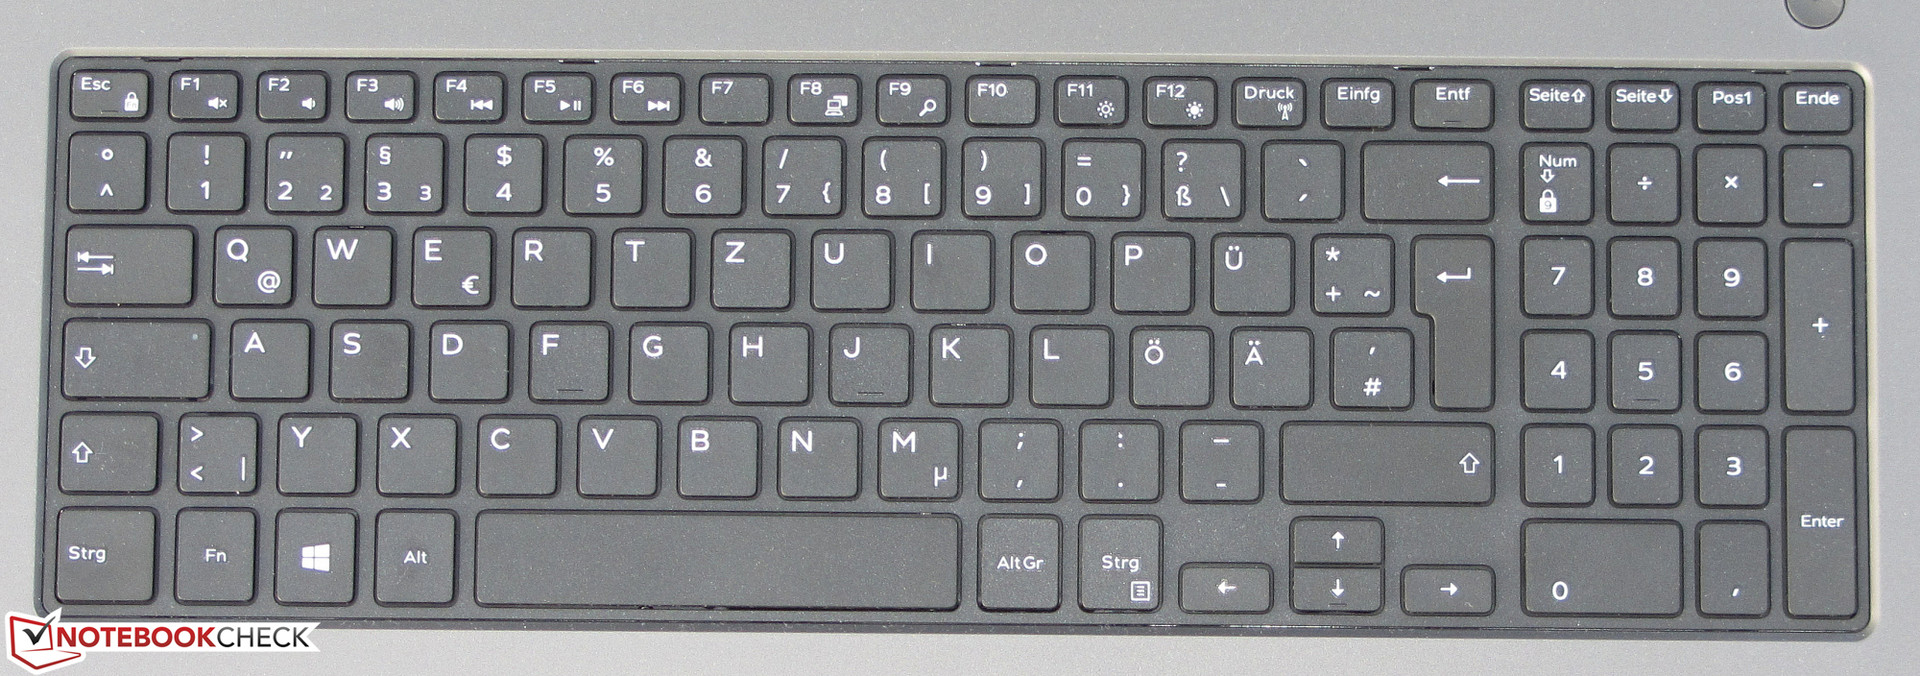 how to turn off backlit keyboard dell